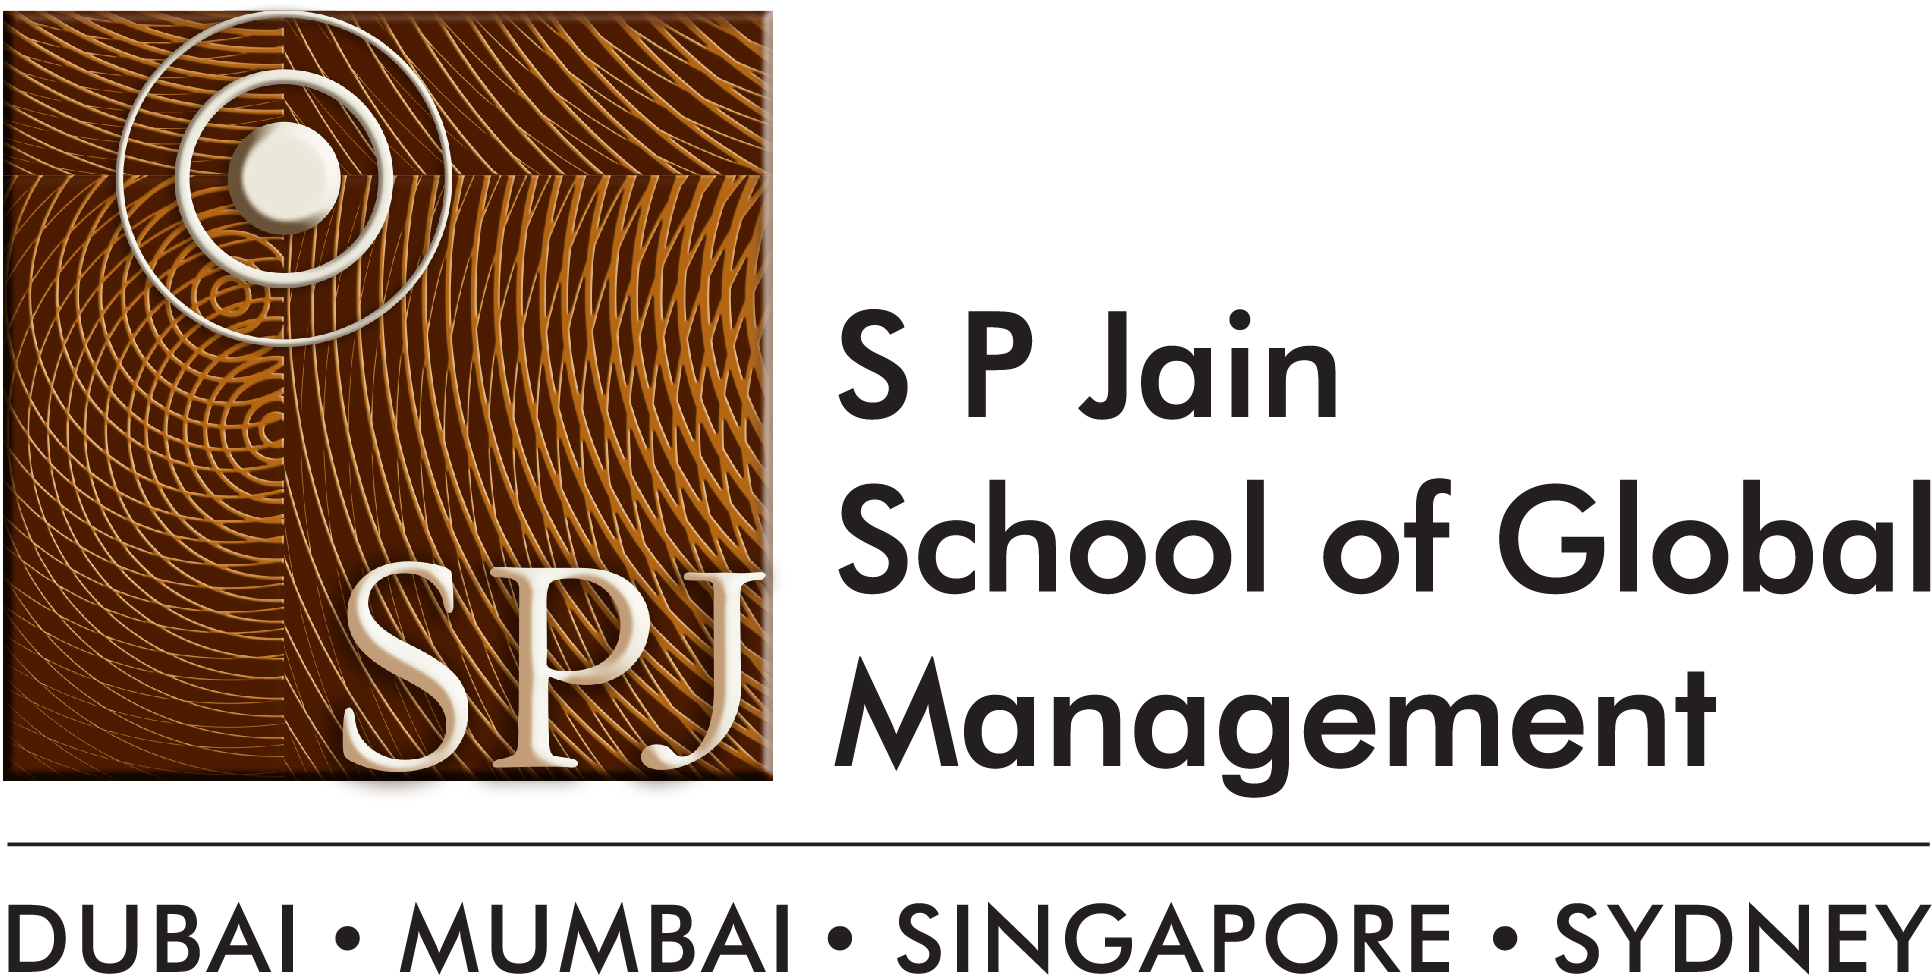 S P Jain School of Global Management Corporate training digital marketing social media workshop courses